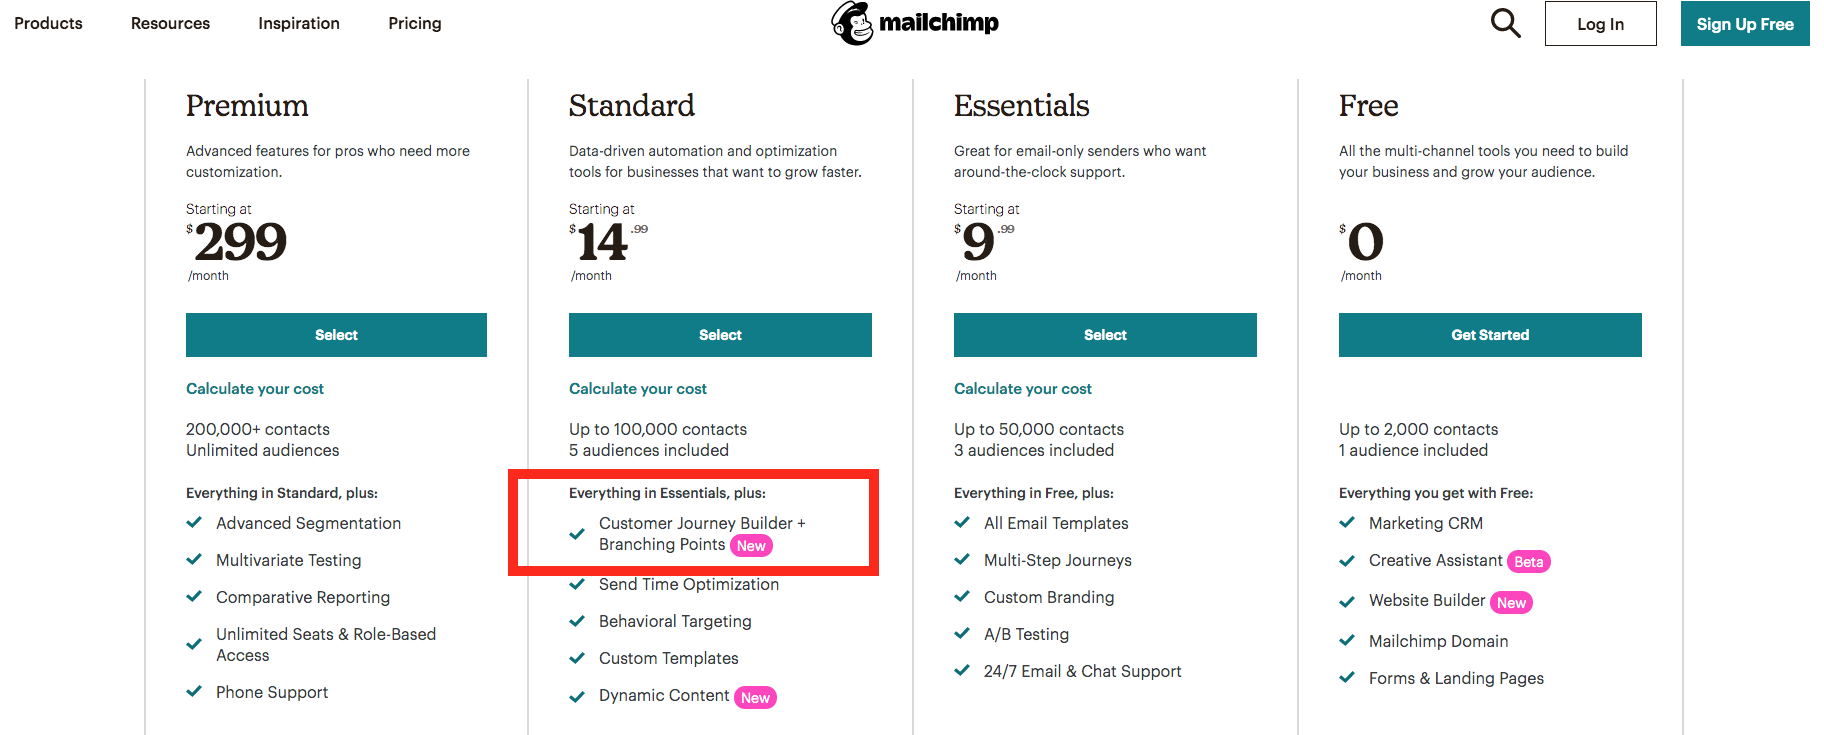 Mailchimp pricing with journeys highlighted in a red box